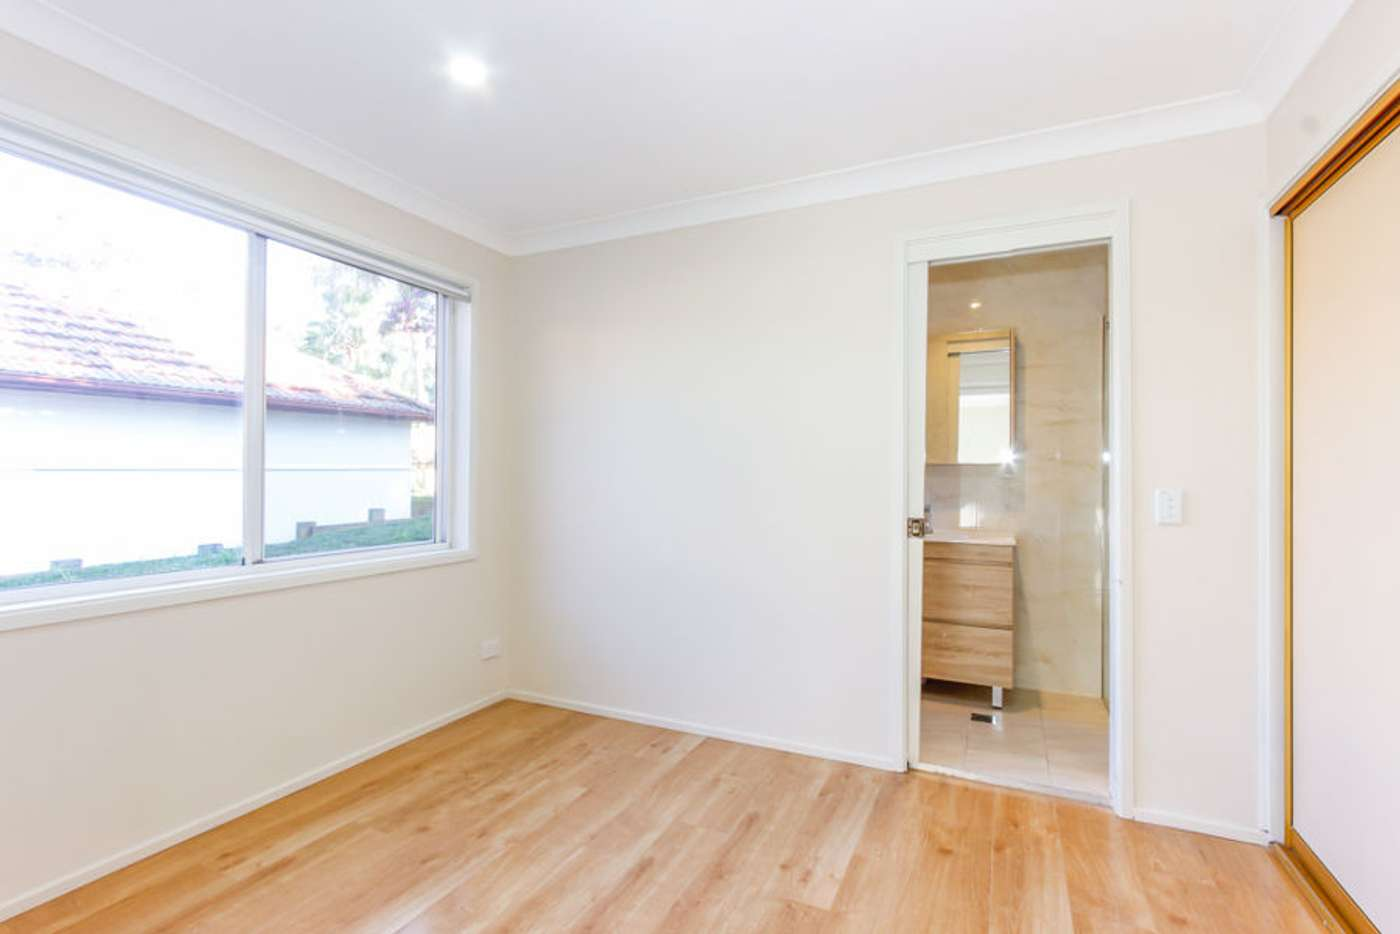 Sixth view of Homely house listing, 24 Rickard Street, Denistone East NSW 2112